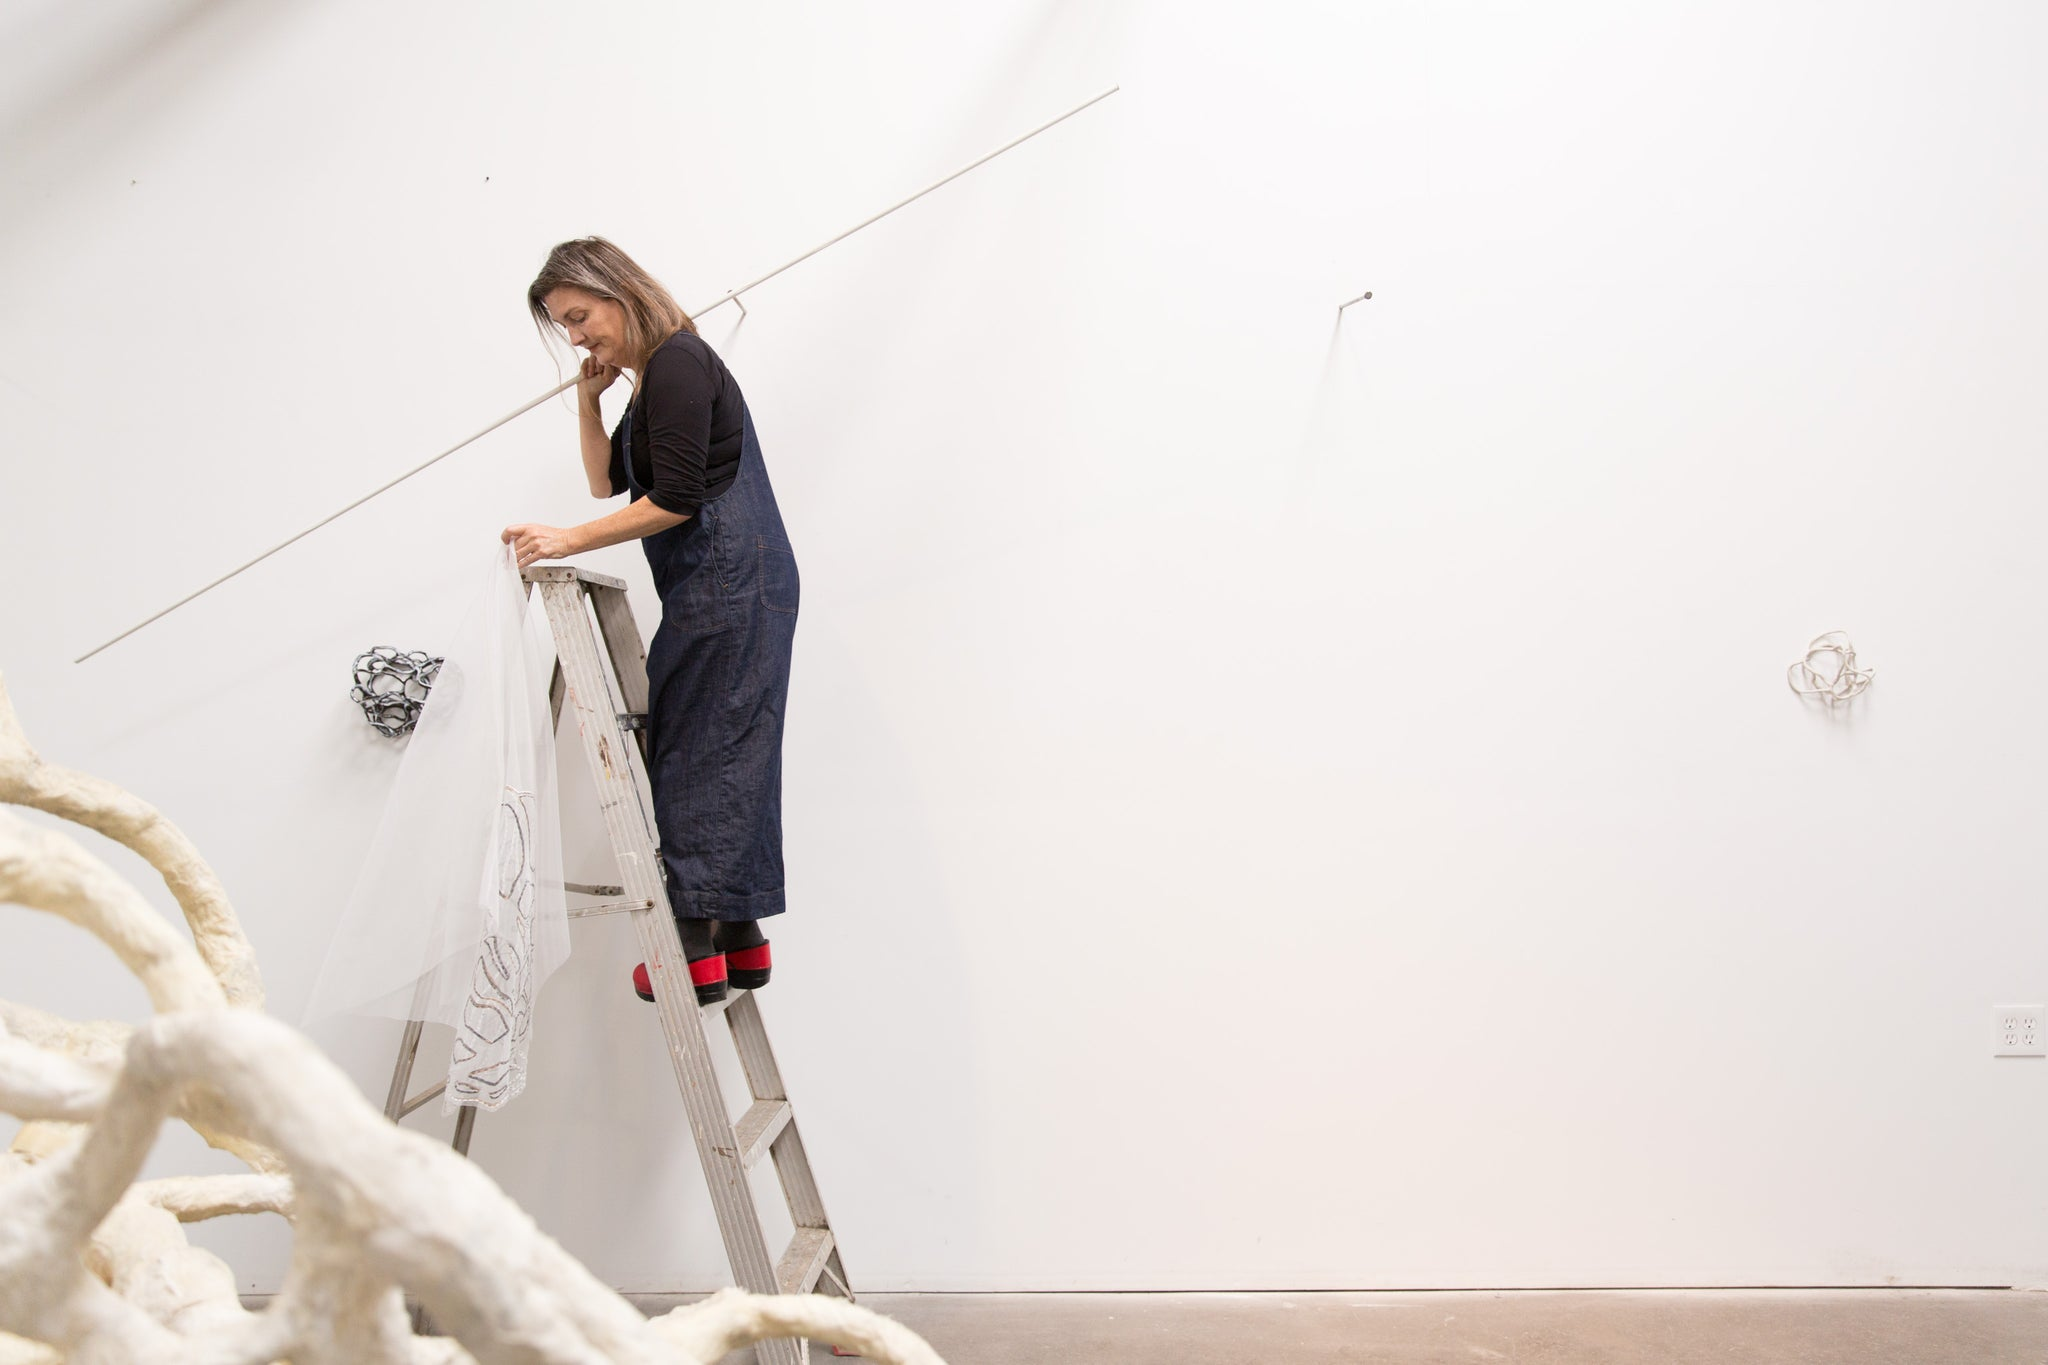 artist, Laura Cooper, on ladder installing artwork